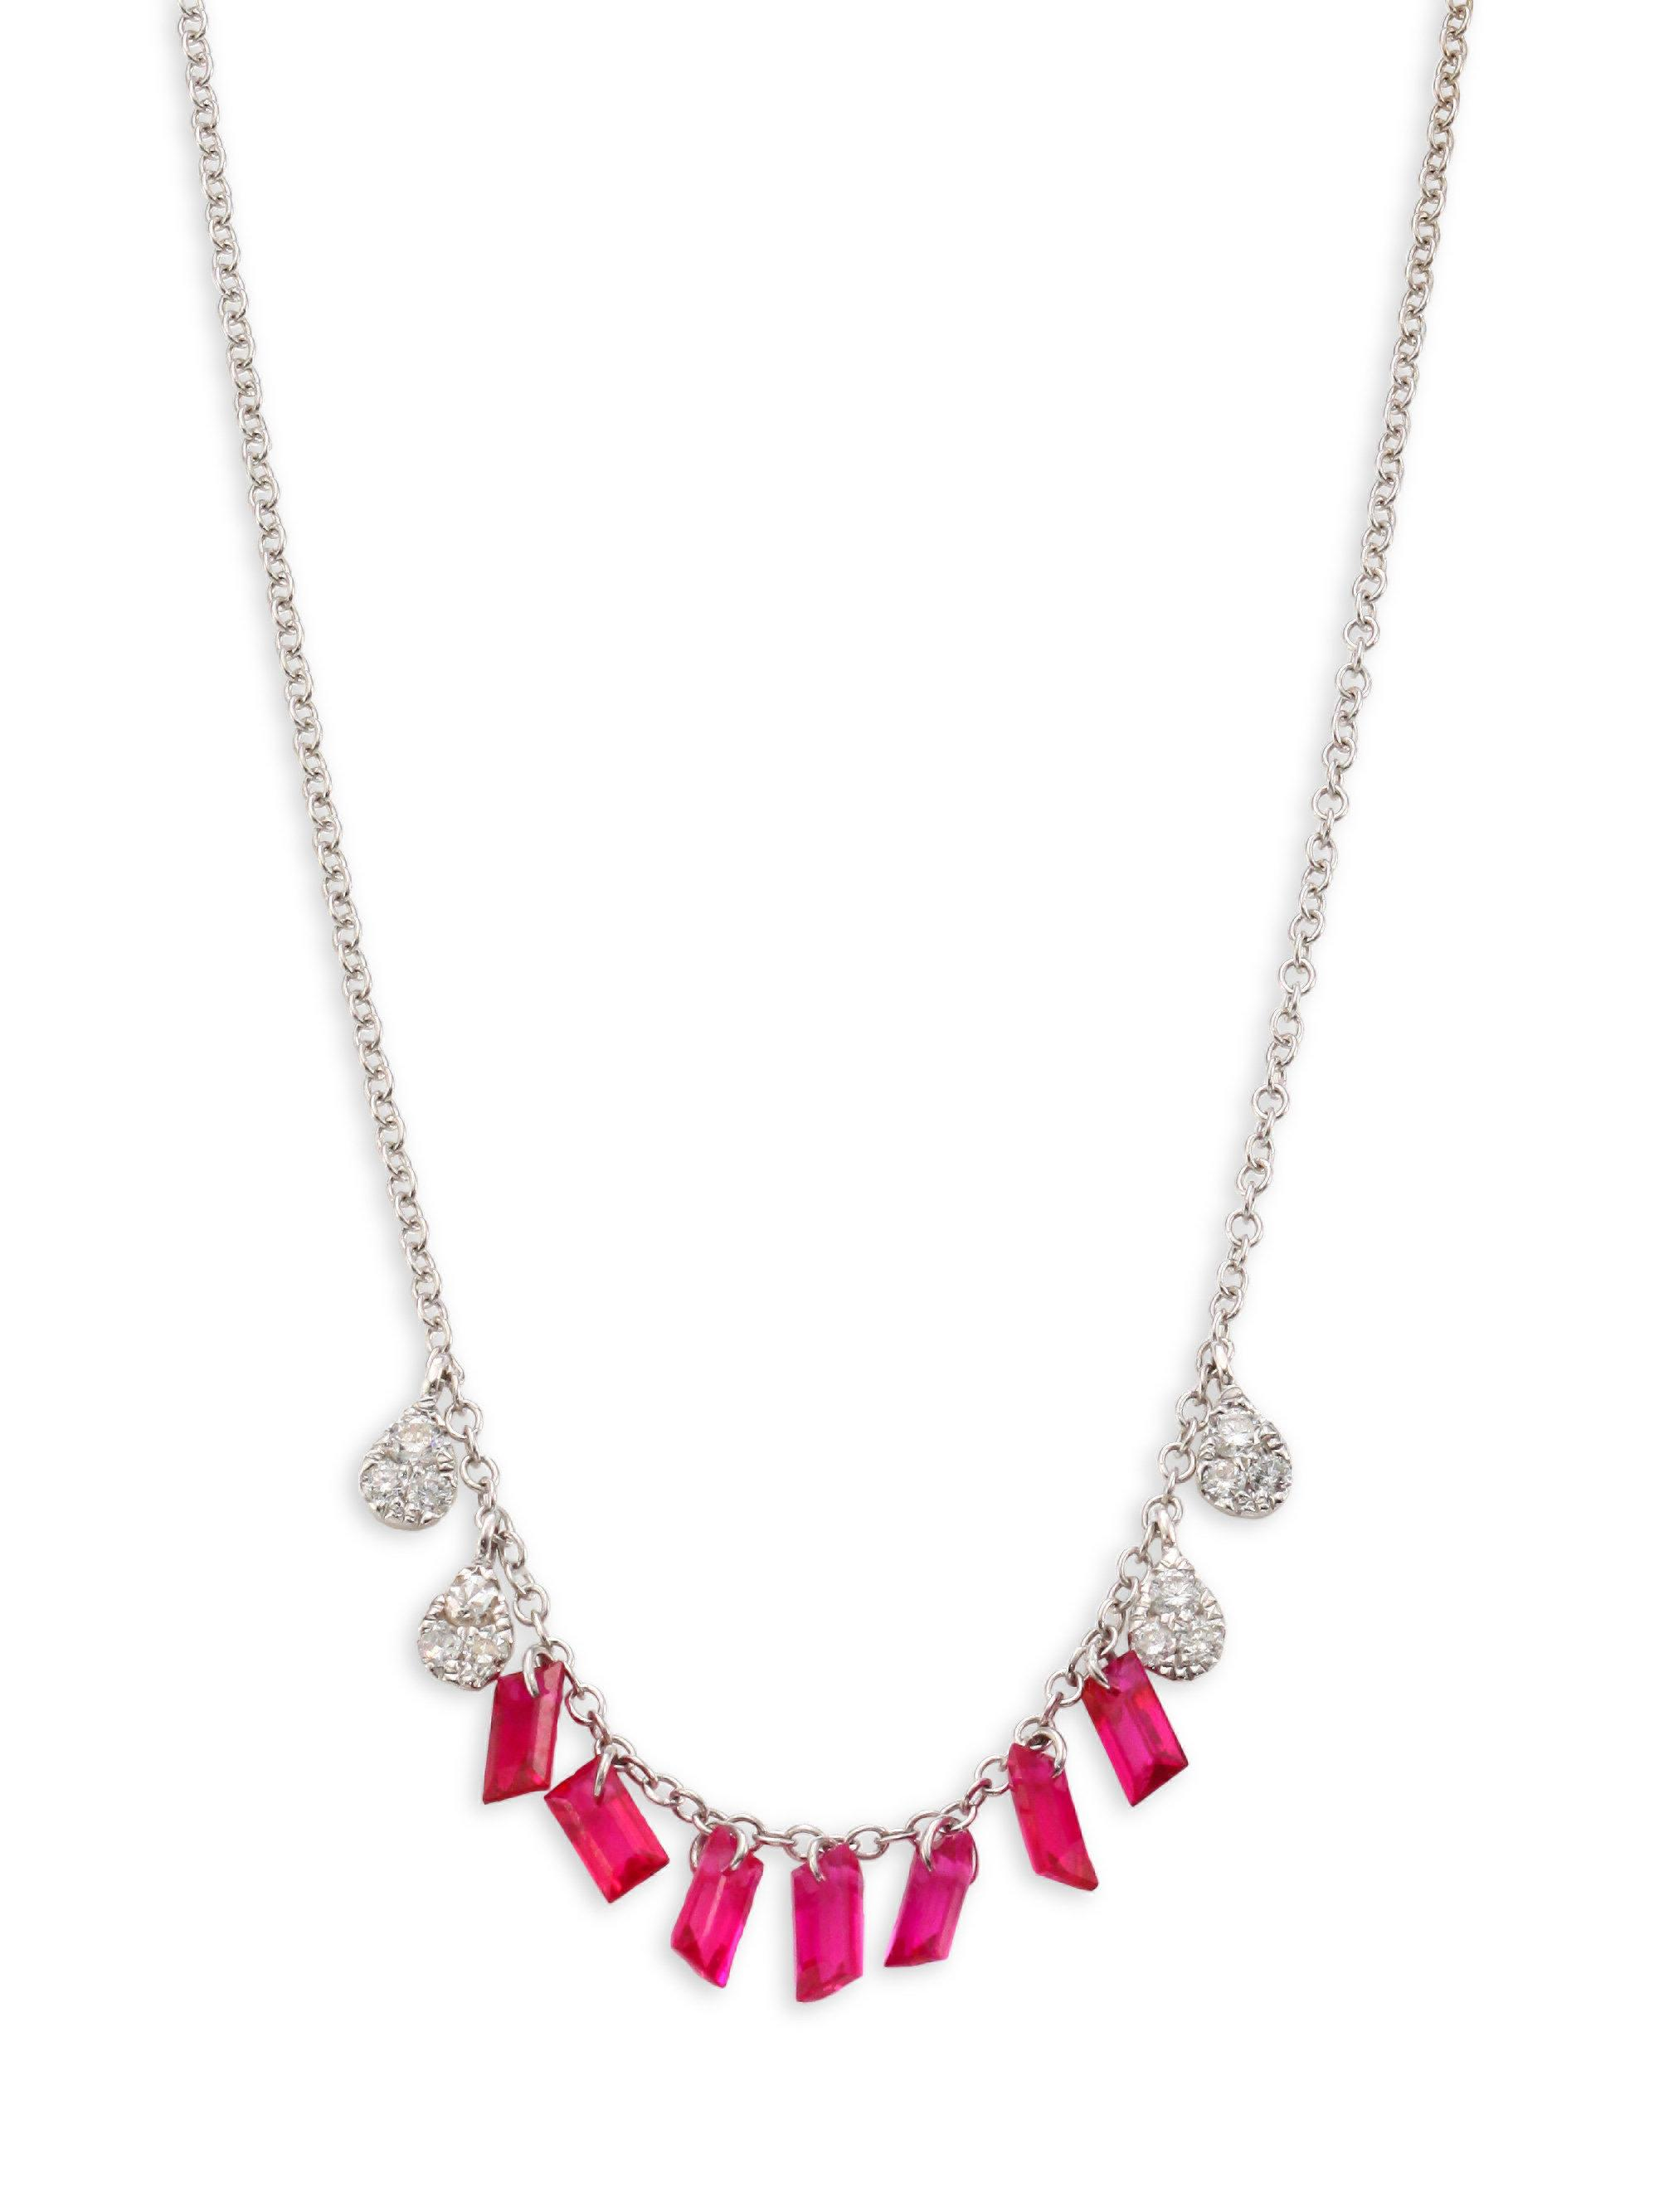 Lyst meira t diamond ruby necklace in metallic meira t womens metallic diamond ruby necklace aloadofball Images